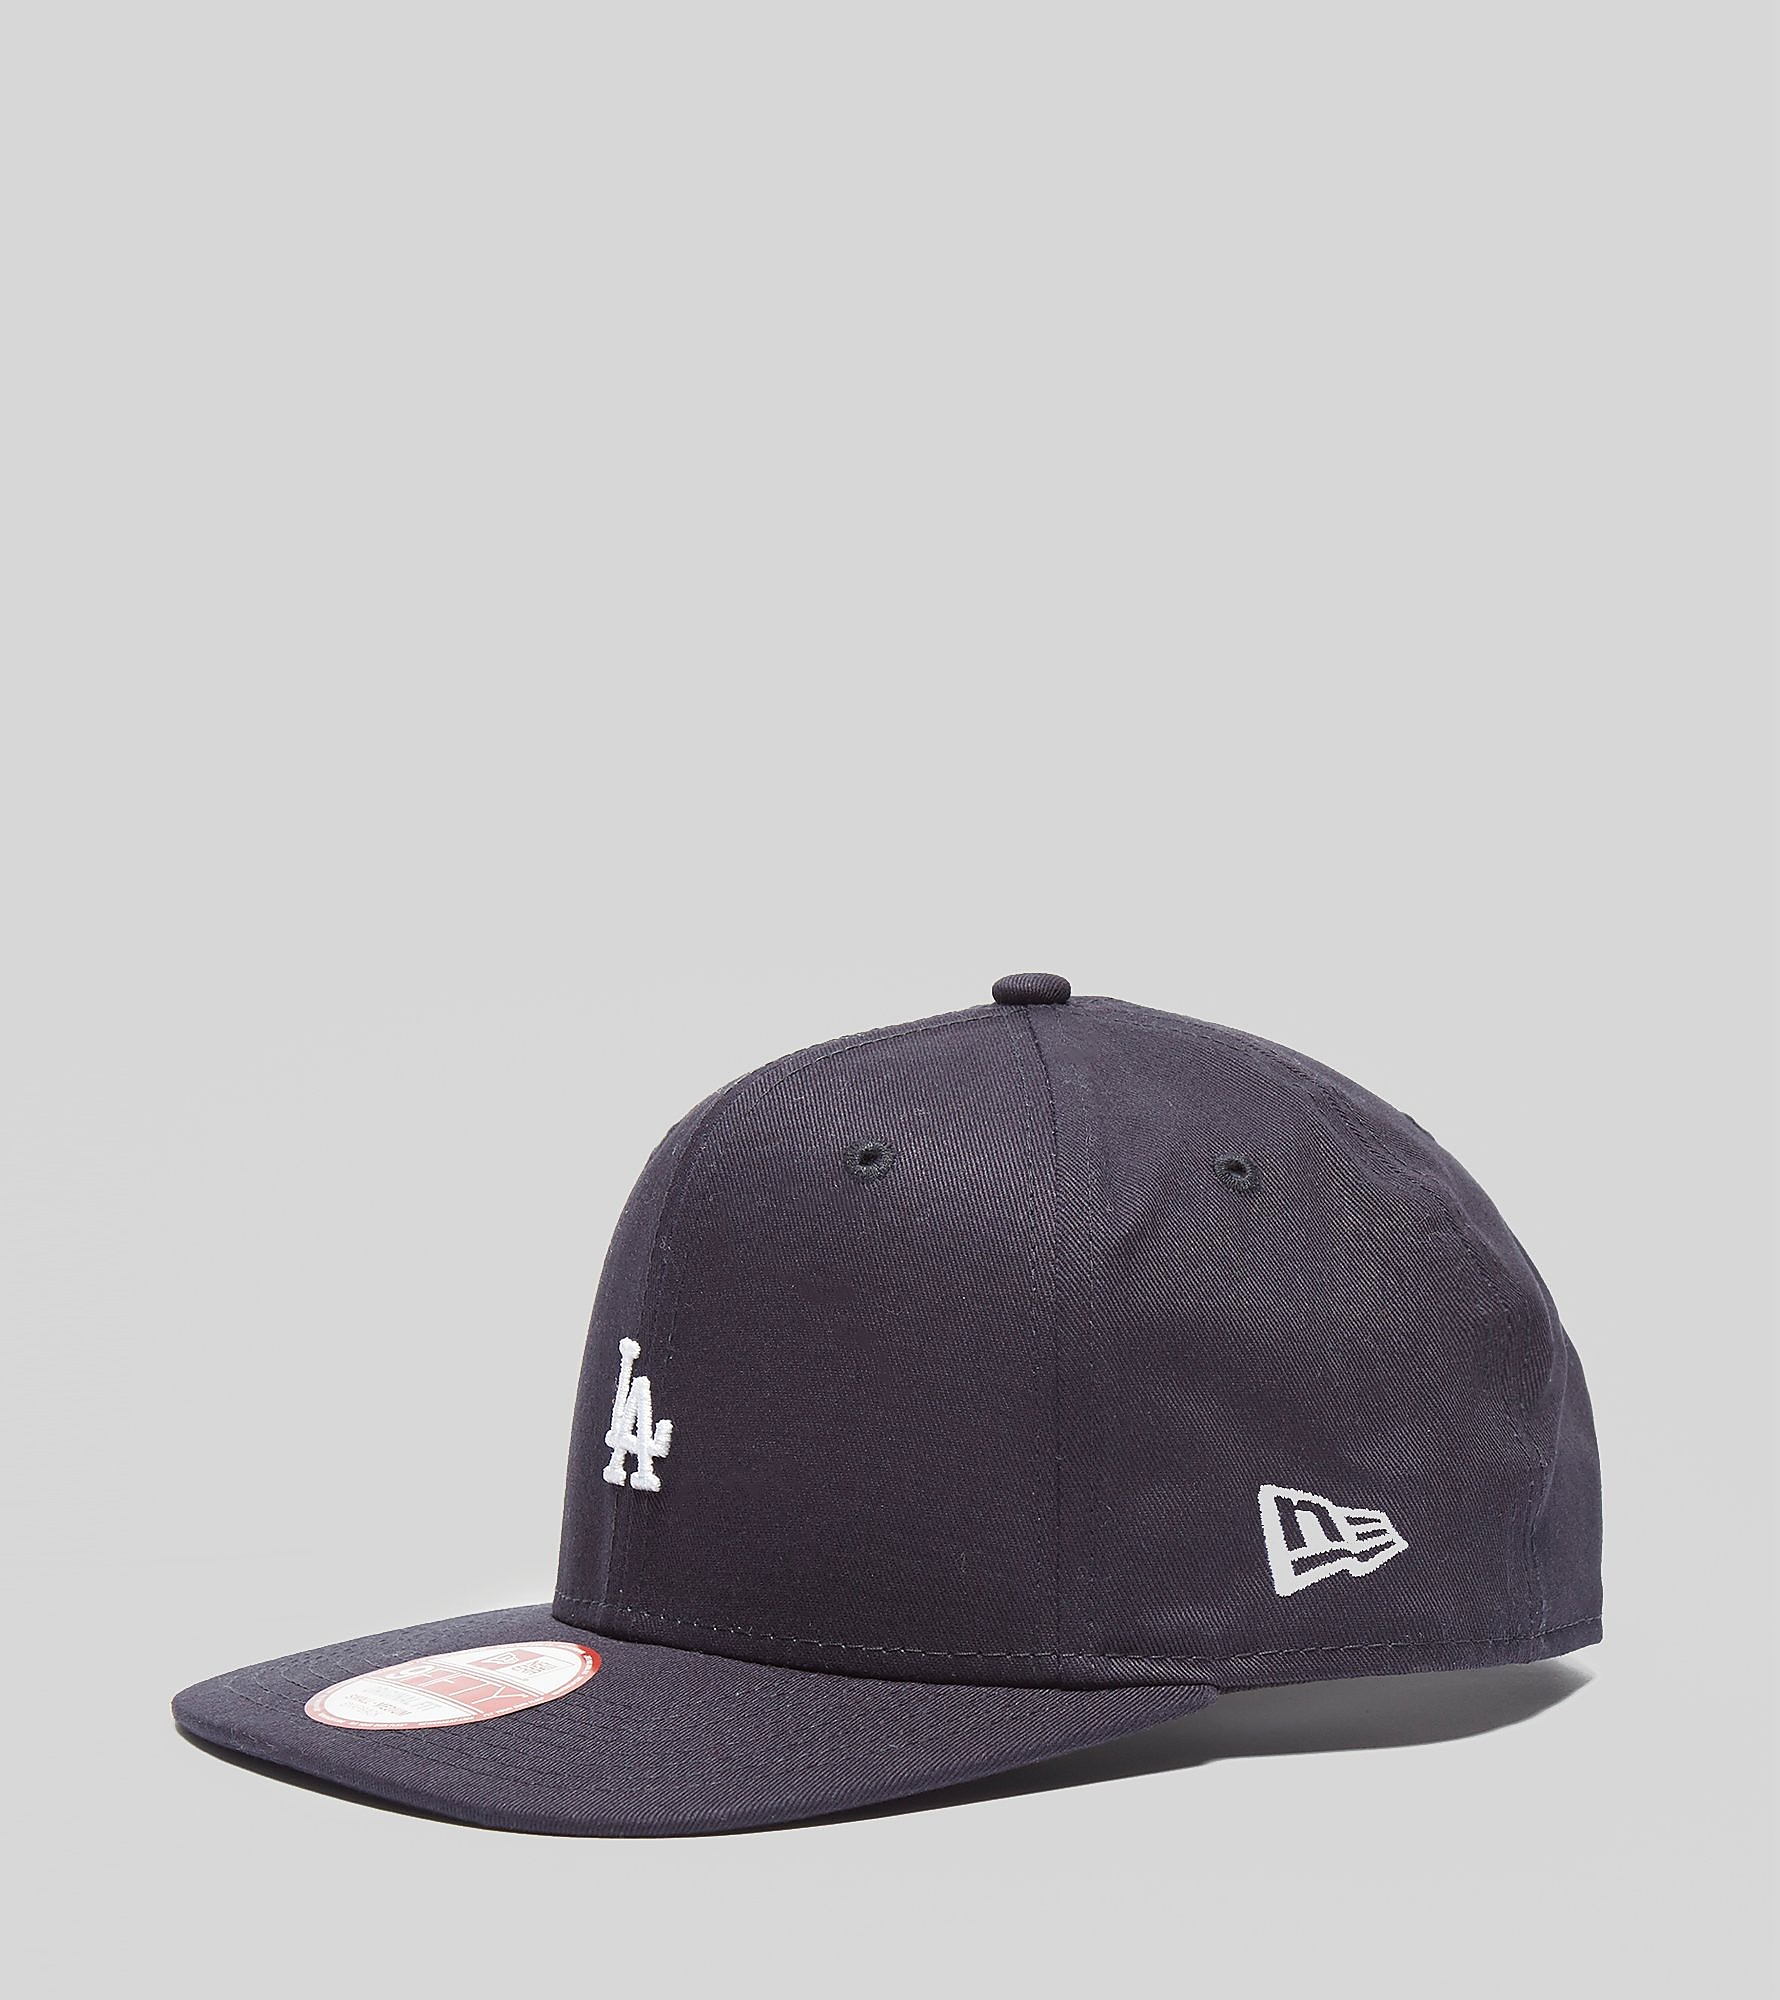 New Era 99TWENTY OG Dodgers Cap - size? Exclusive